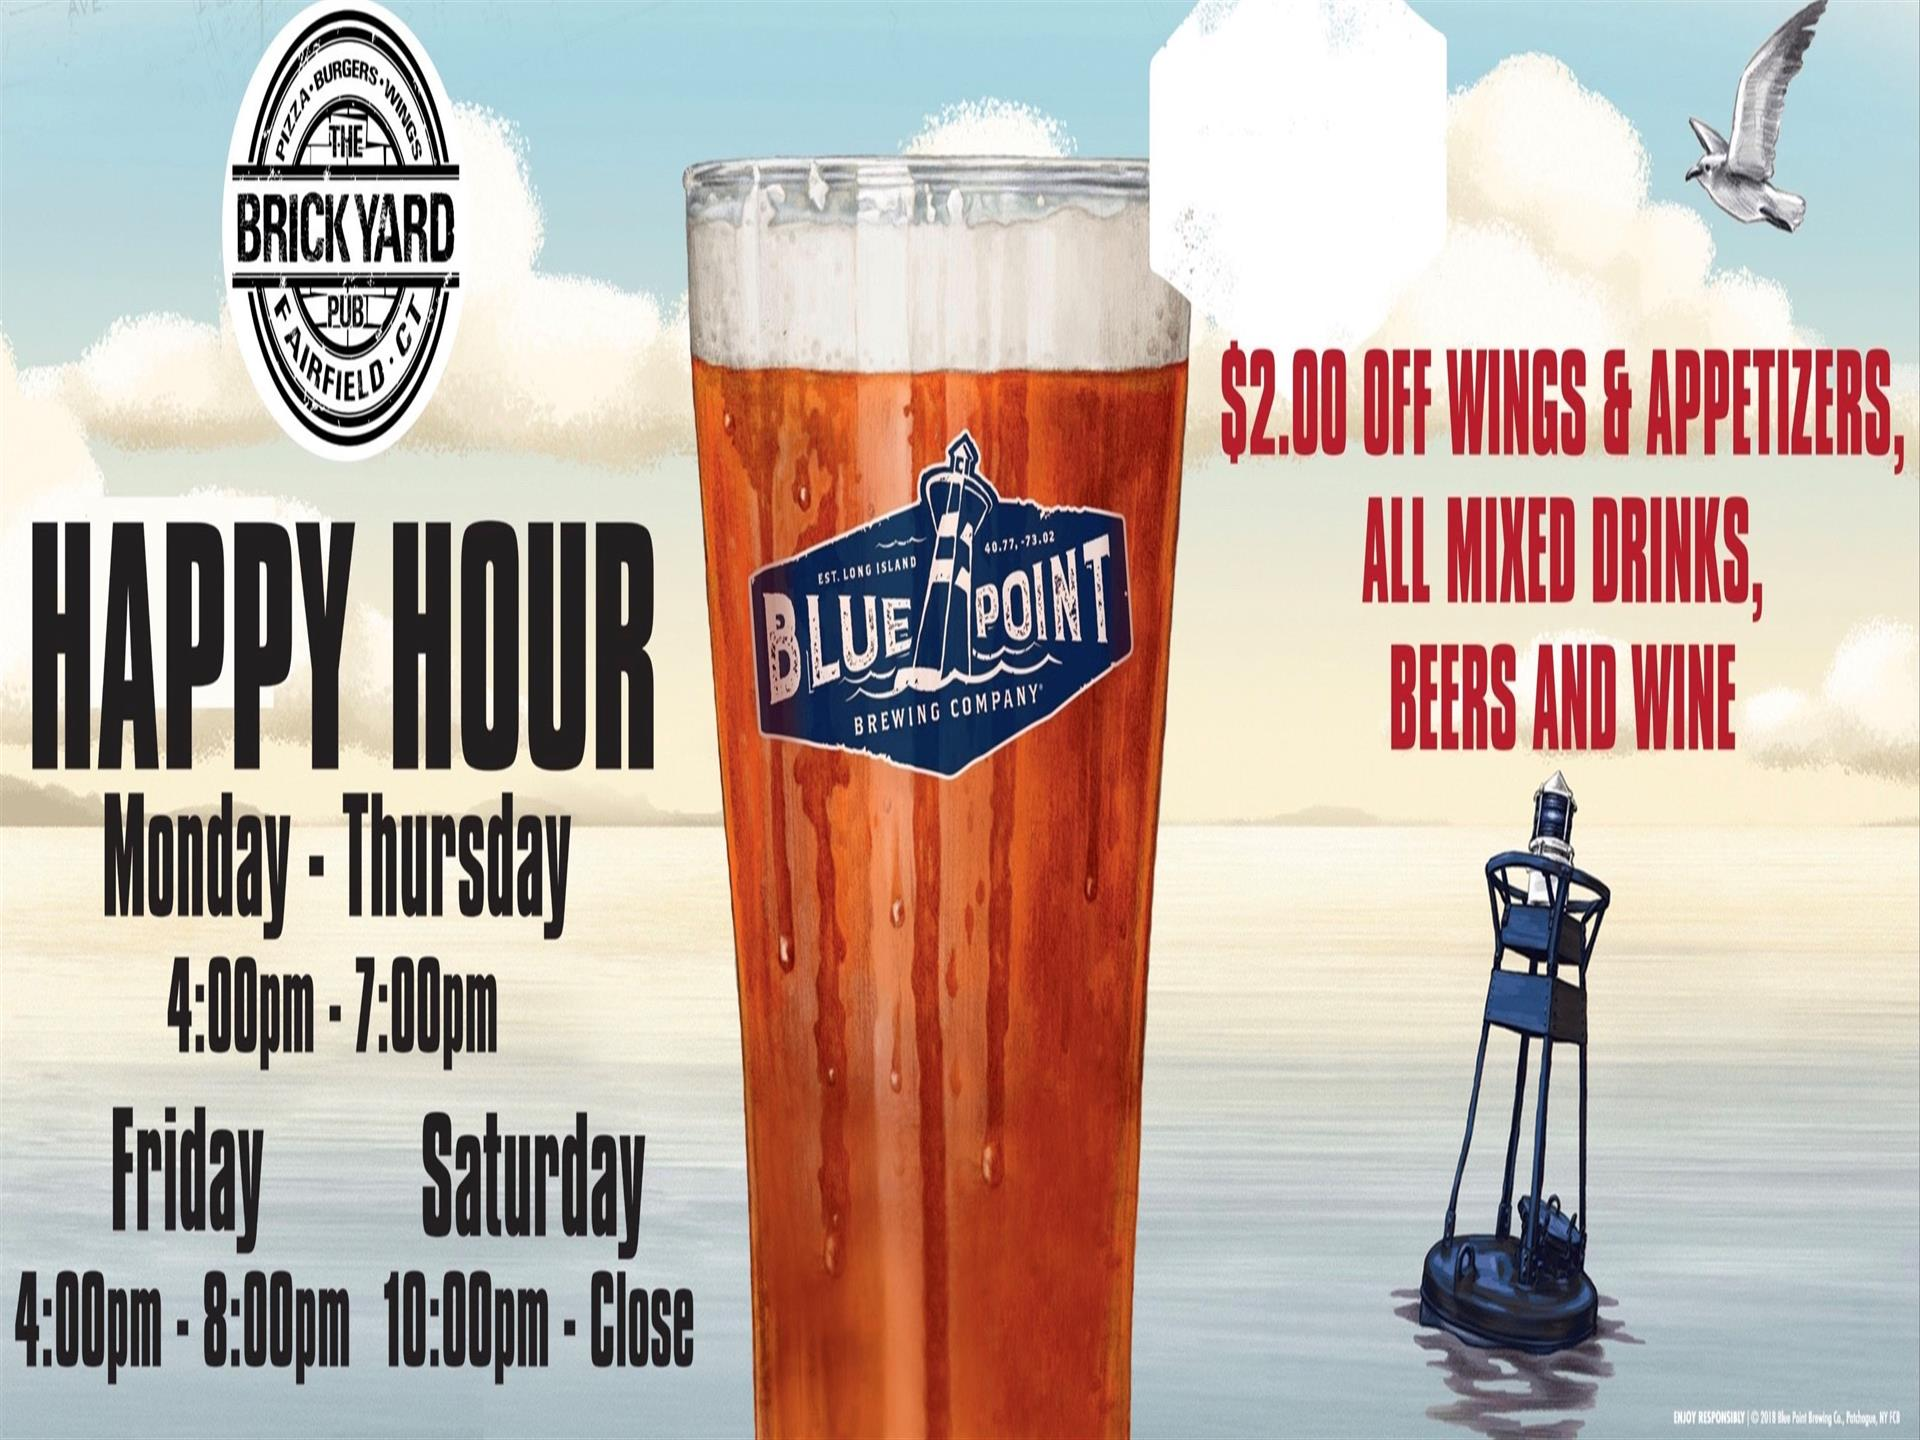 happy hour monday - thursday from 4pm - 7pm, friday from 4pm to 8pm and saturaday 10pm - close. $2 off wings & appetizers, all mixed drinks, beers and wines